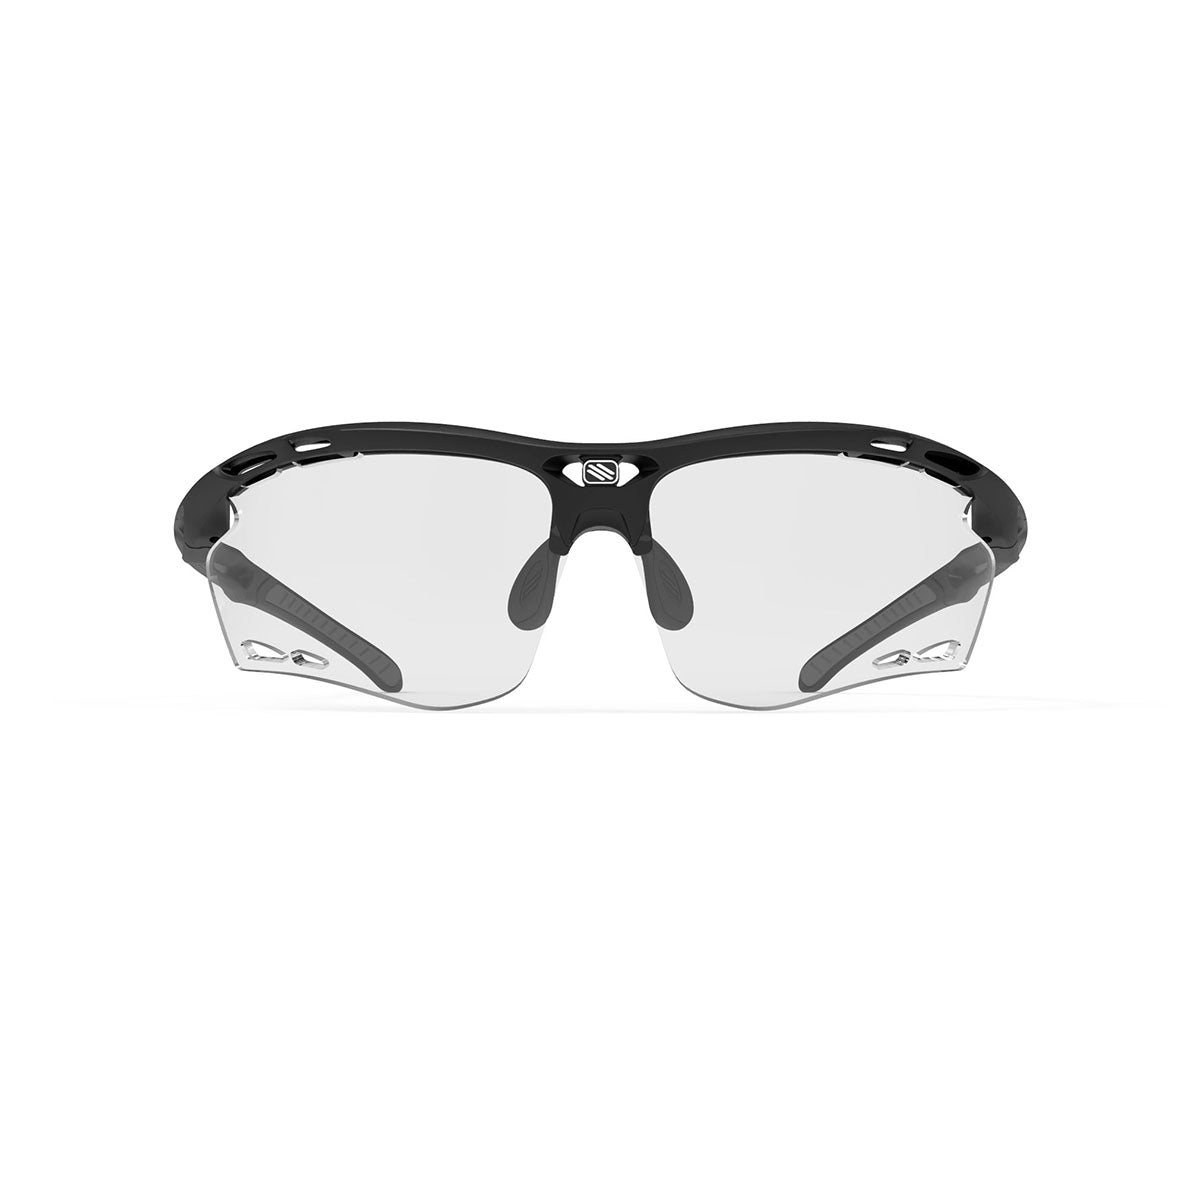 Rudy Project - Propulse - frame color: Matte Black - lens color: ImpactX-2 Photochromic Clear to Black - Bumper Color:  - photo angle: Front View Variant Hover Image